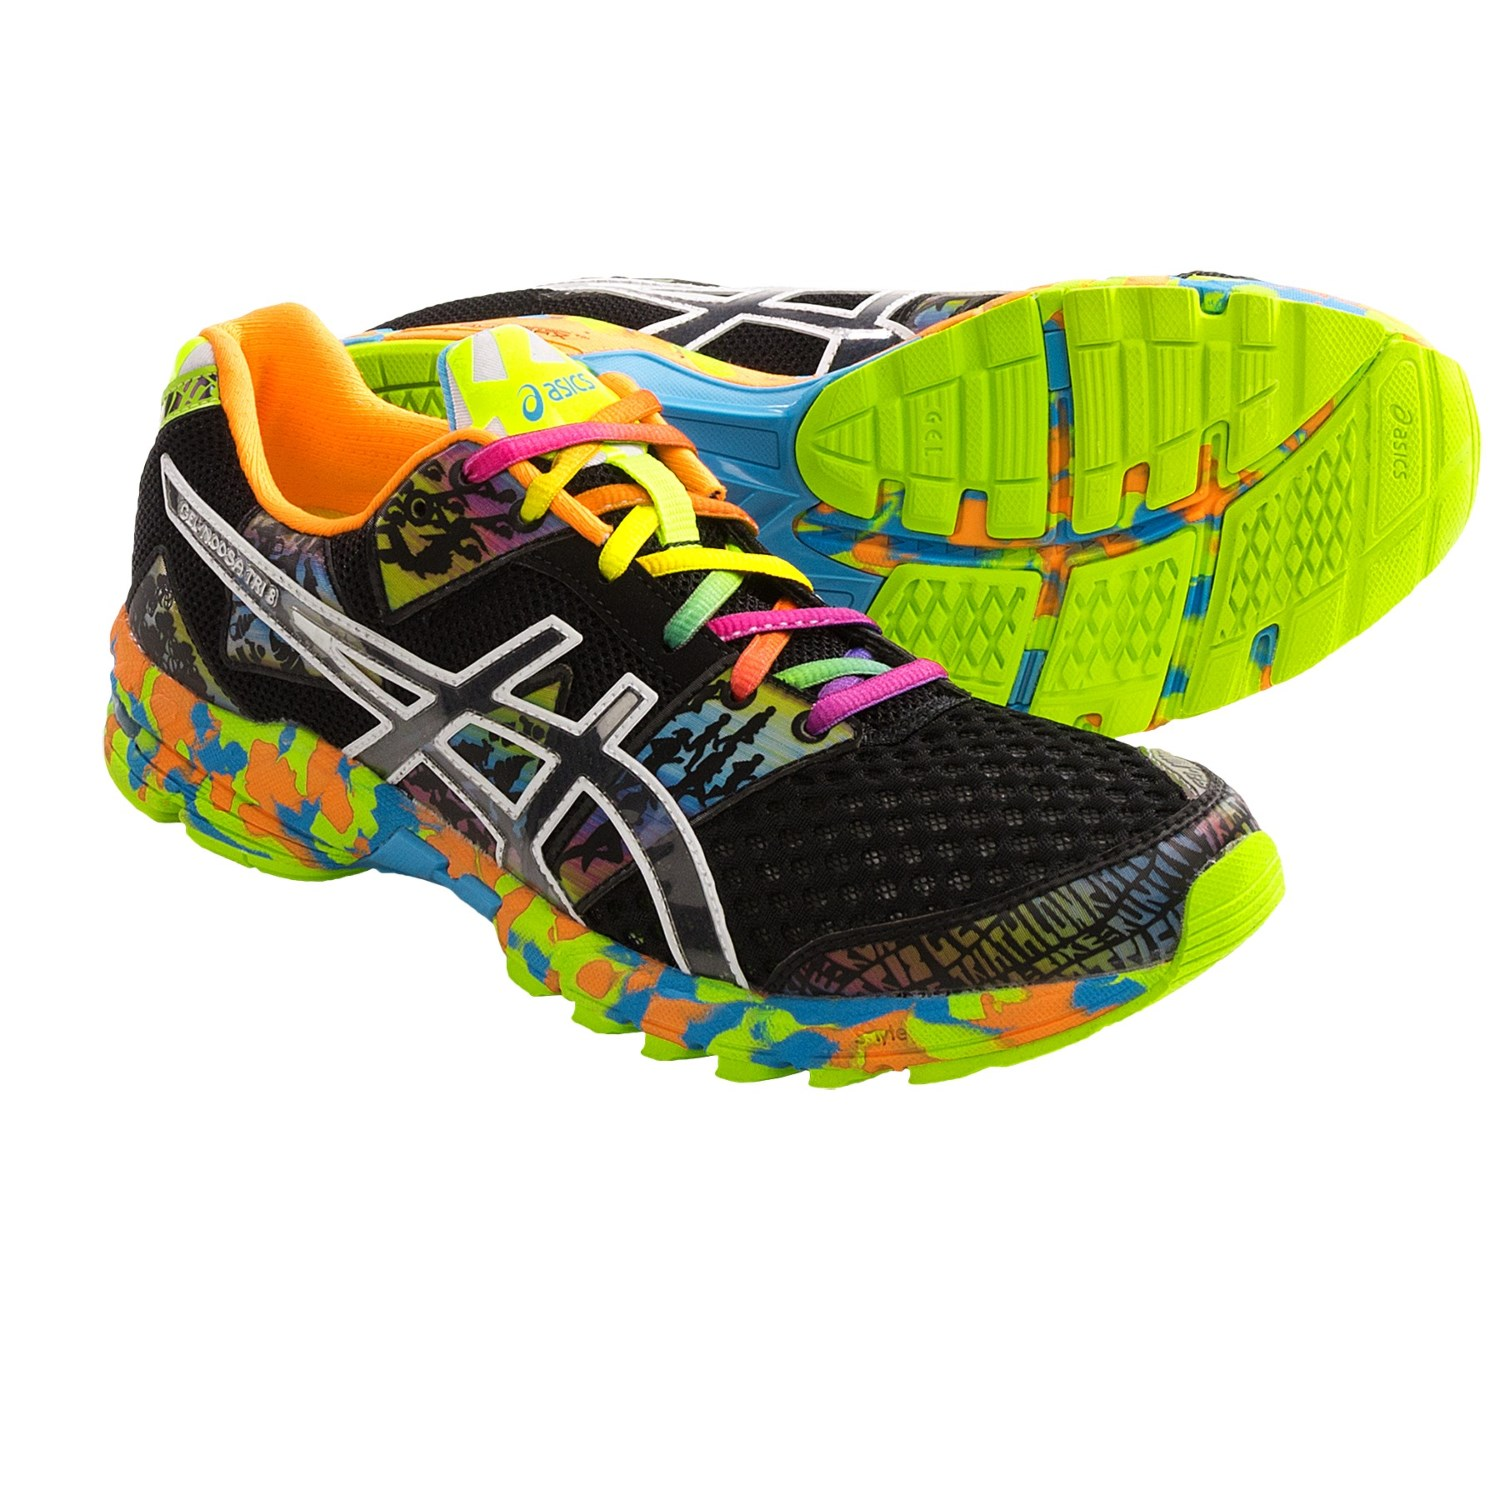 RECENT PURCHASES THREAD MKII Asics-gel-noosa-tri-8-running-shoes-for-men-in-onyx-black-confetti~p~6666a_03~1500.2